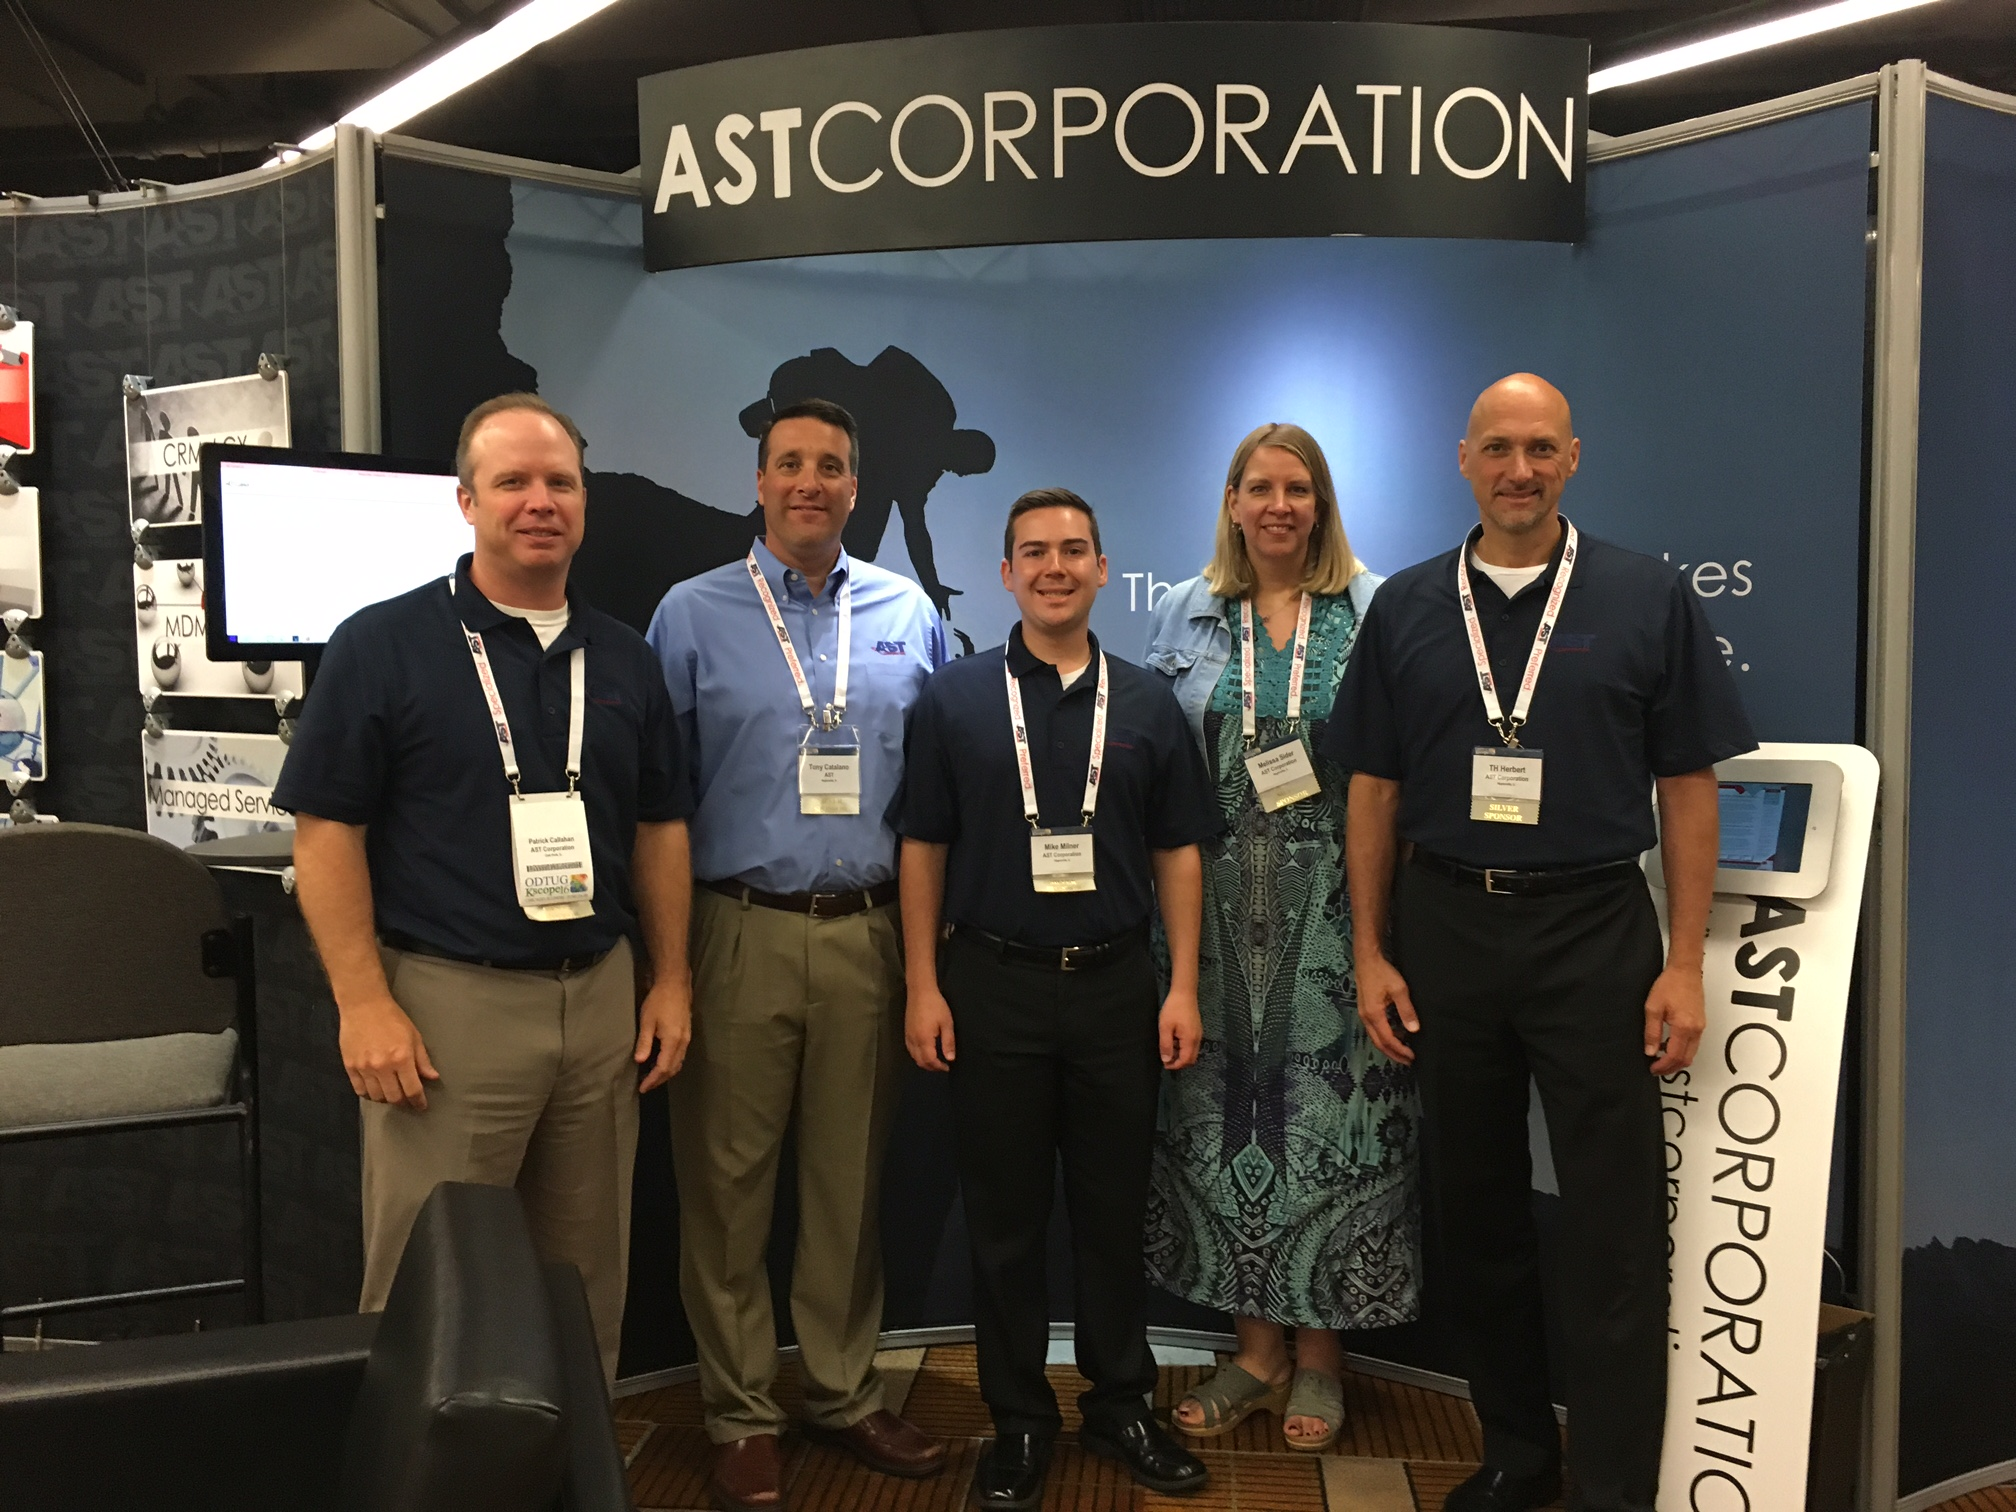 Team AST at Kscope16!